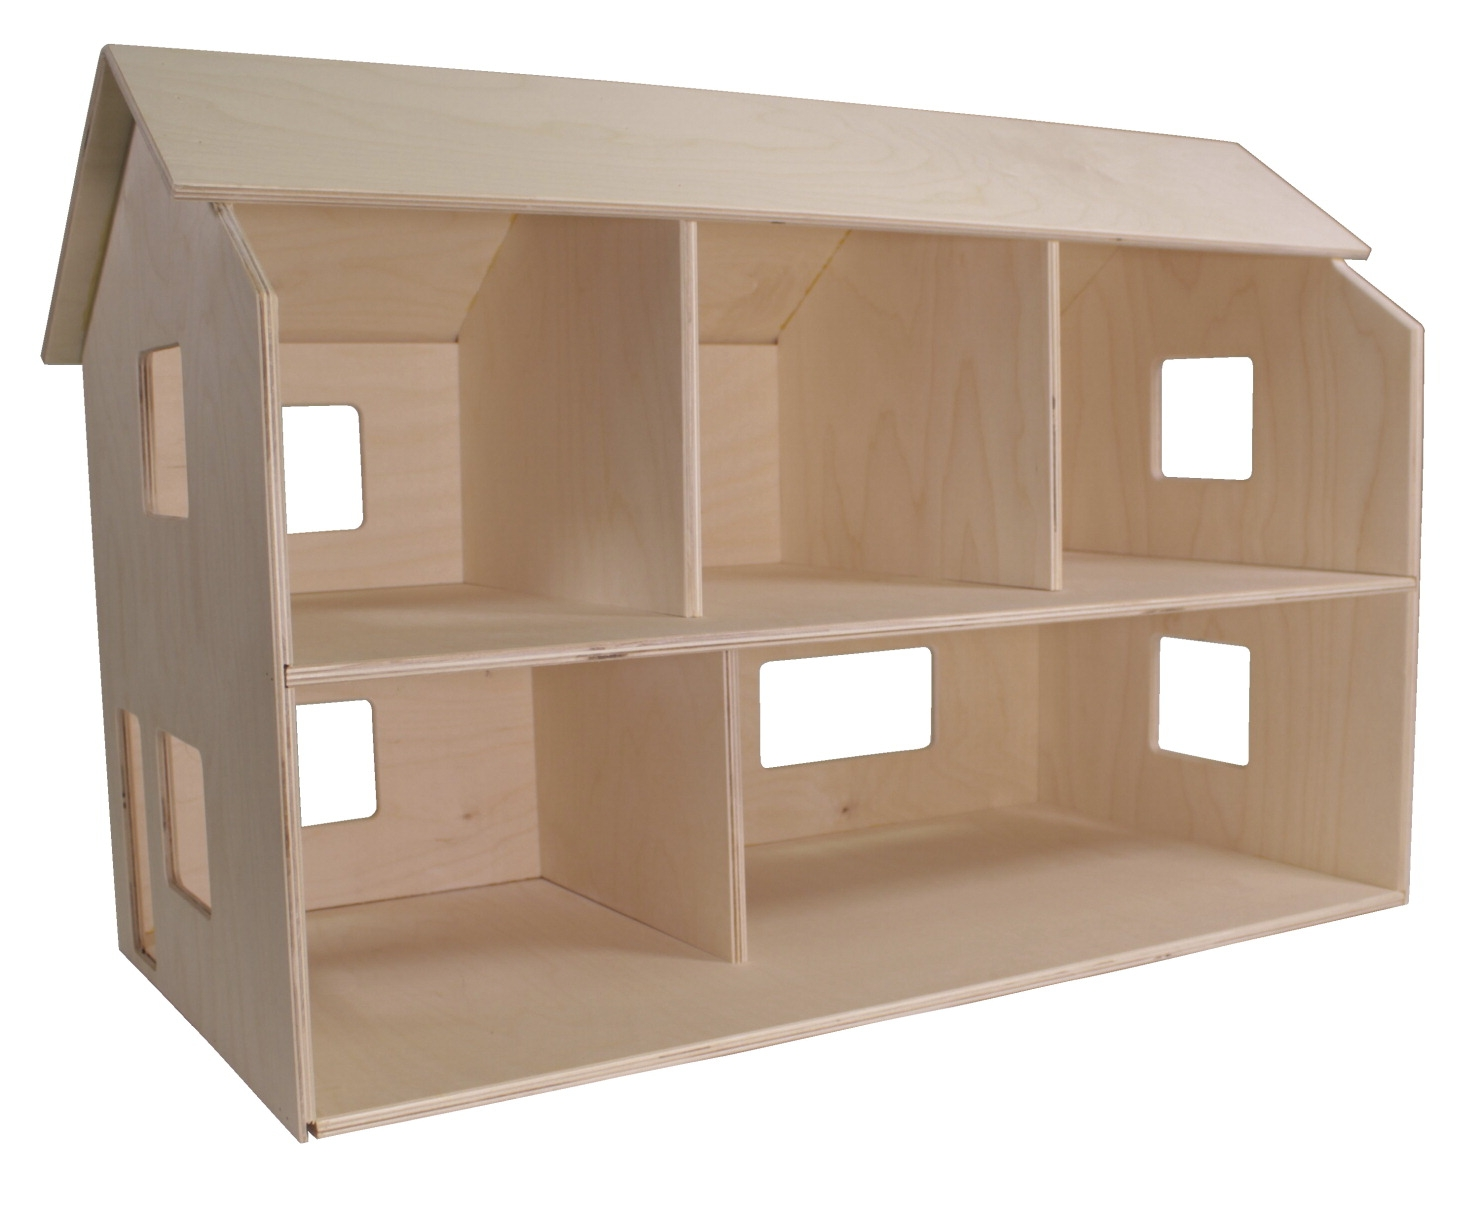 Facilities Management Dollhouses Dollhouses Room Boxes Foyers Half Scale Garden Sheds - 252363 - Childcraft Classic Dollhouse; Unfinished; 29-3/4 X 15-1/2 X 19-1/2 Inches 252363